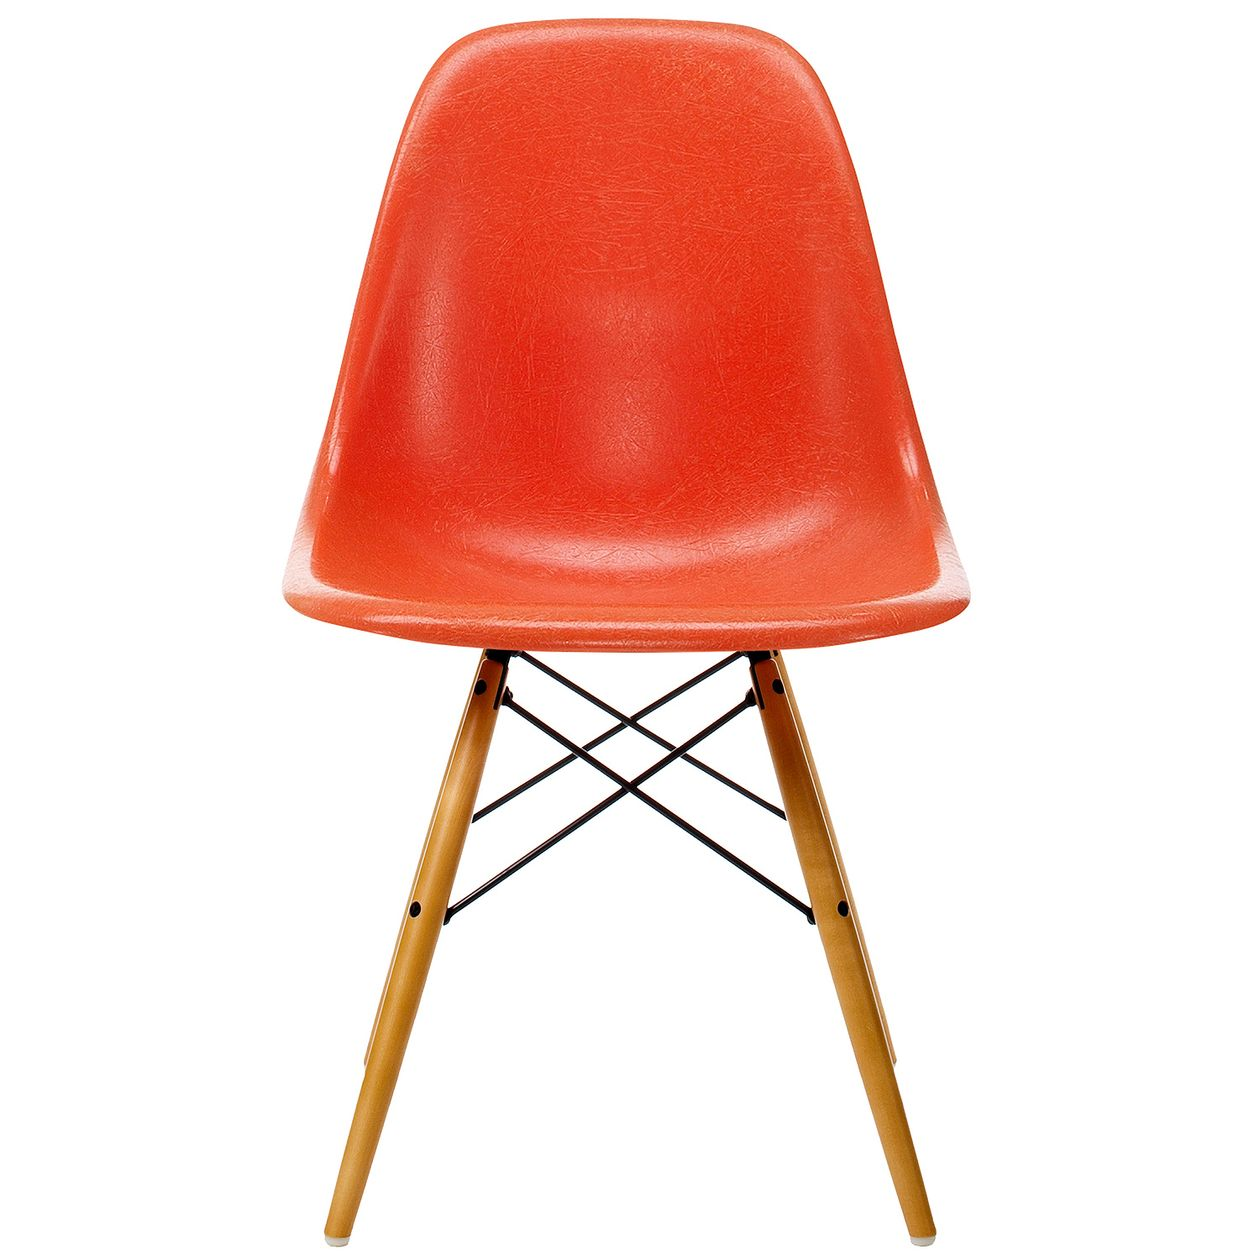 Vitra Eames Fiberglass Chair in red orange